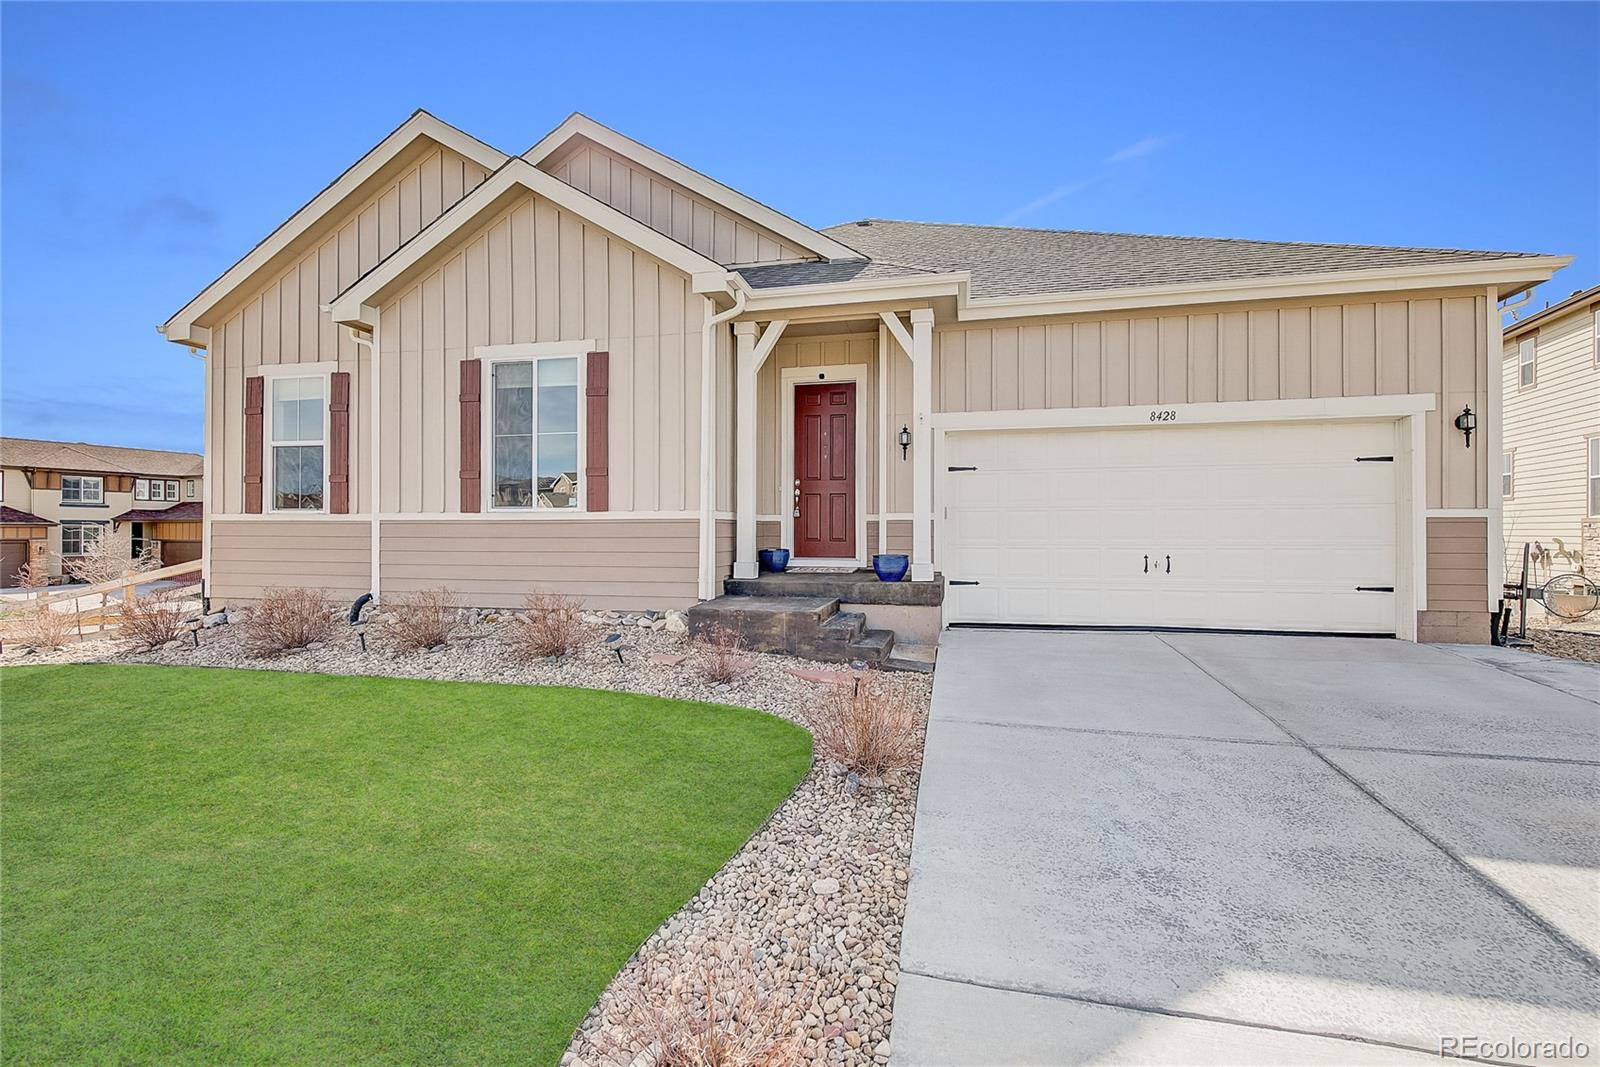 8428 Poppy Loop, Arvada, CO 80007 - Arvada, CO real estate listing